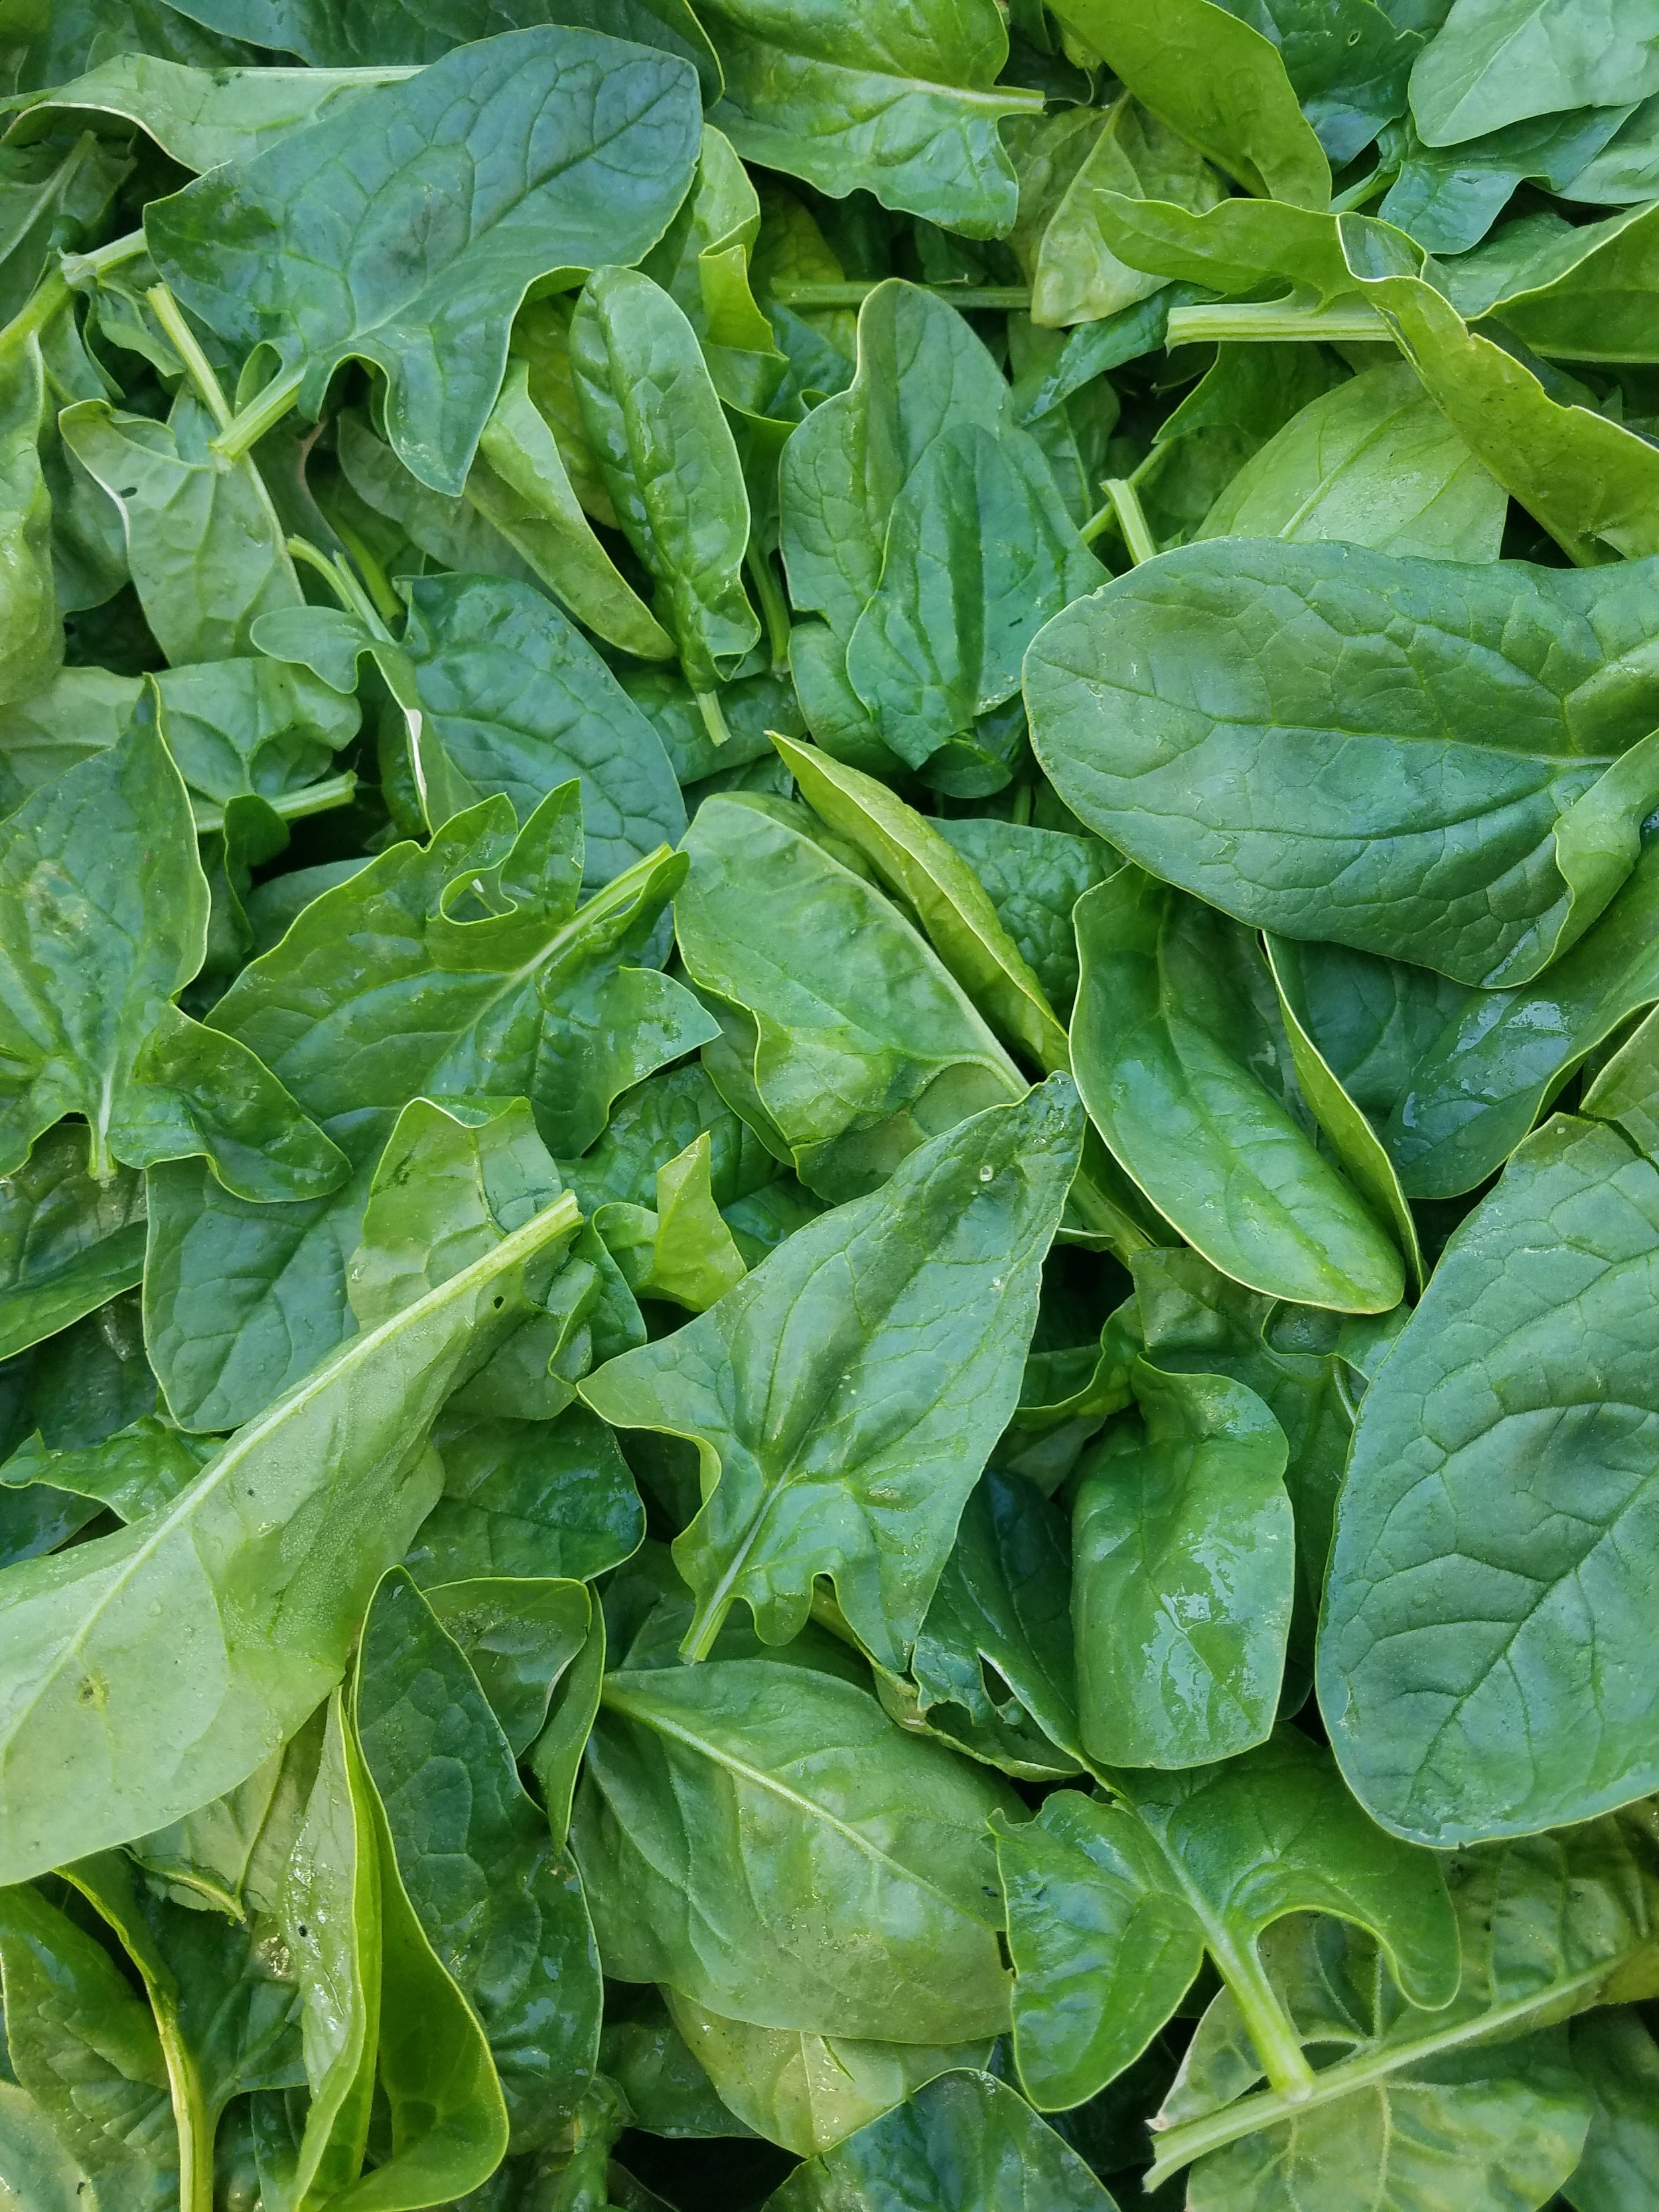 Spinach - A hearty salad green that is just as good cooked as it is raw. Packed with nutrients and an earthy flavor, it's a great addition to any meal.